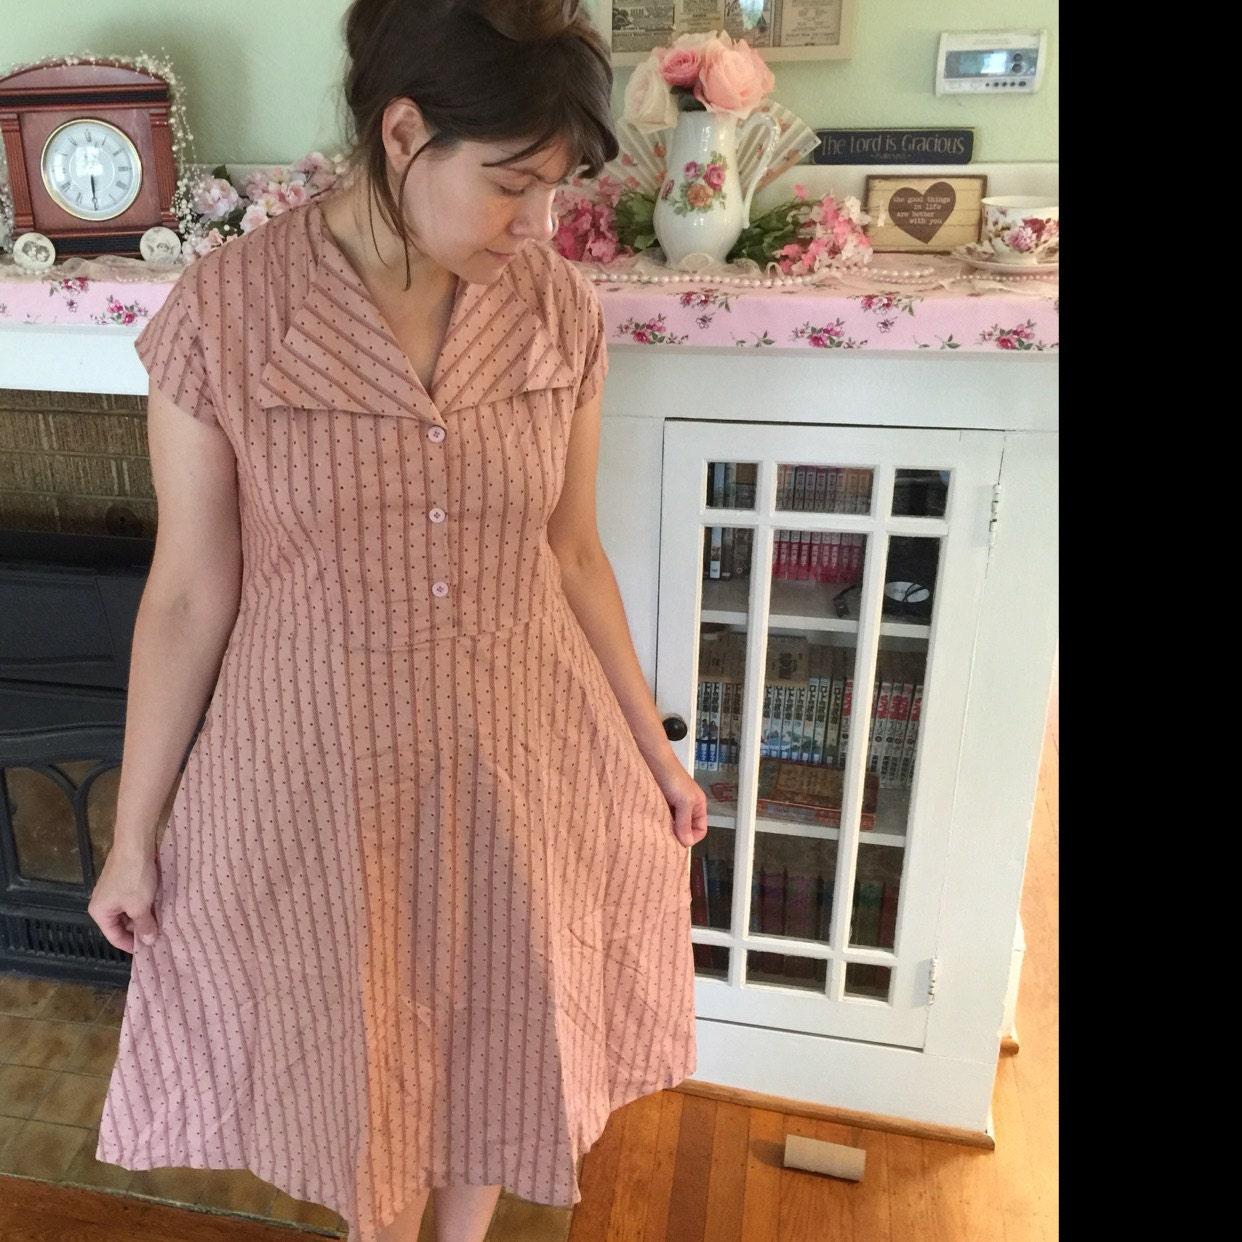 Renei Hundley-Pearson added a photo of their purchase